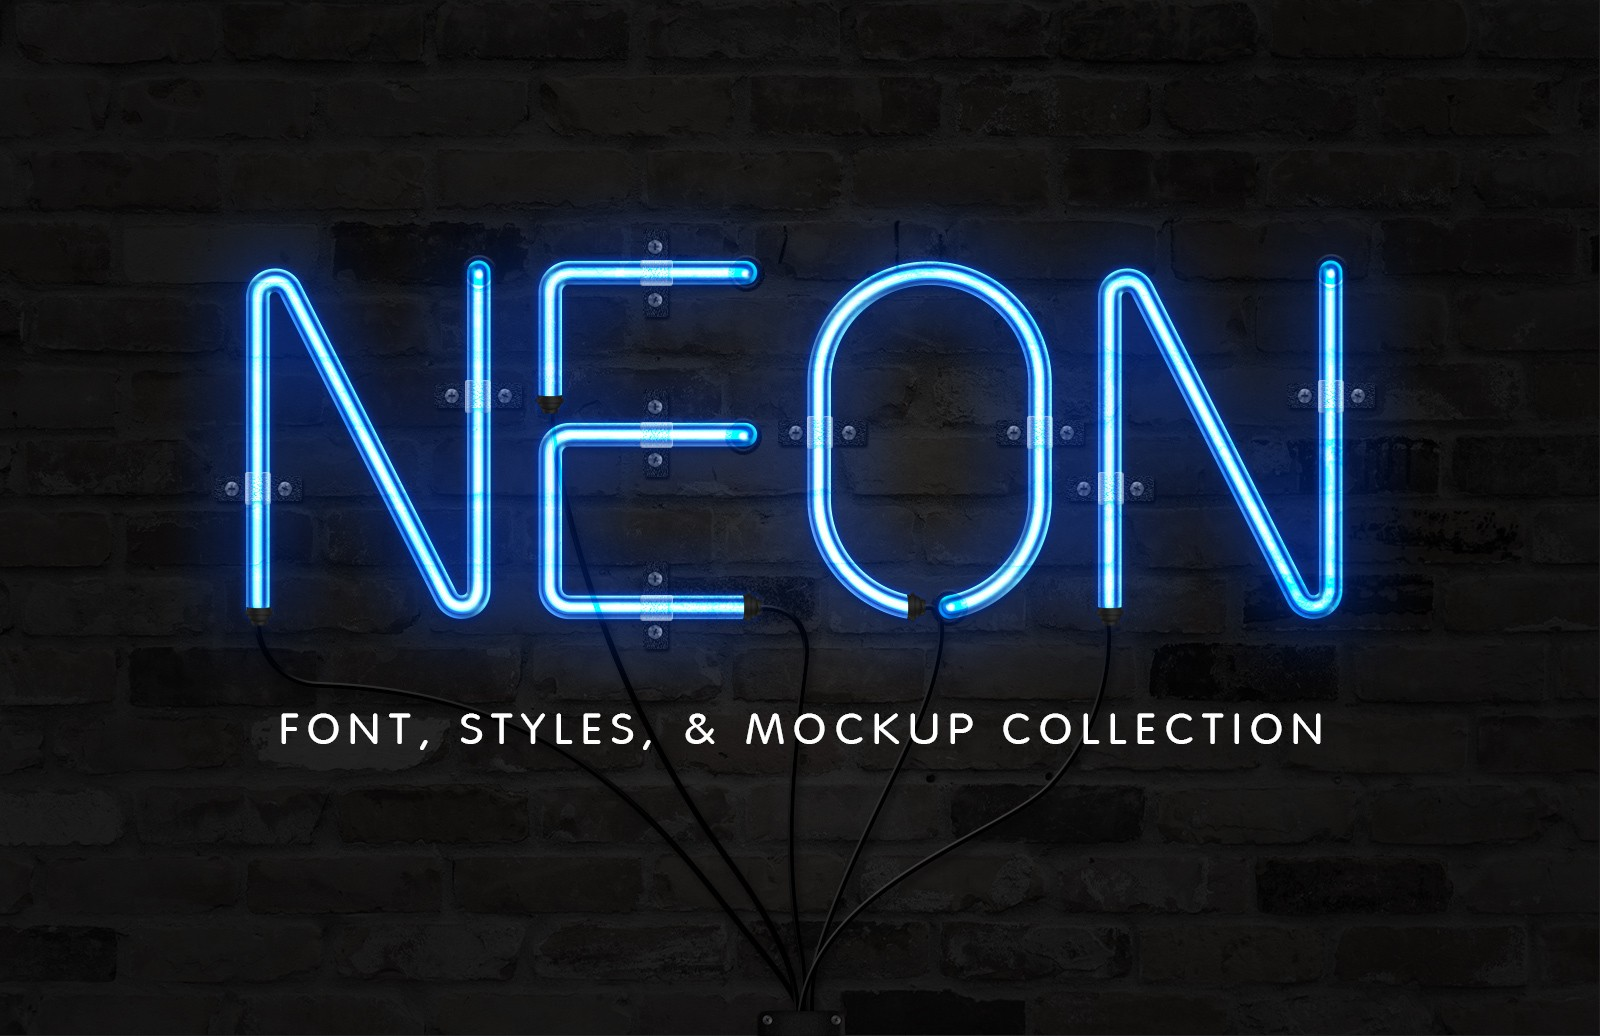 The Neon Font & Sign Collection